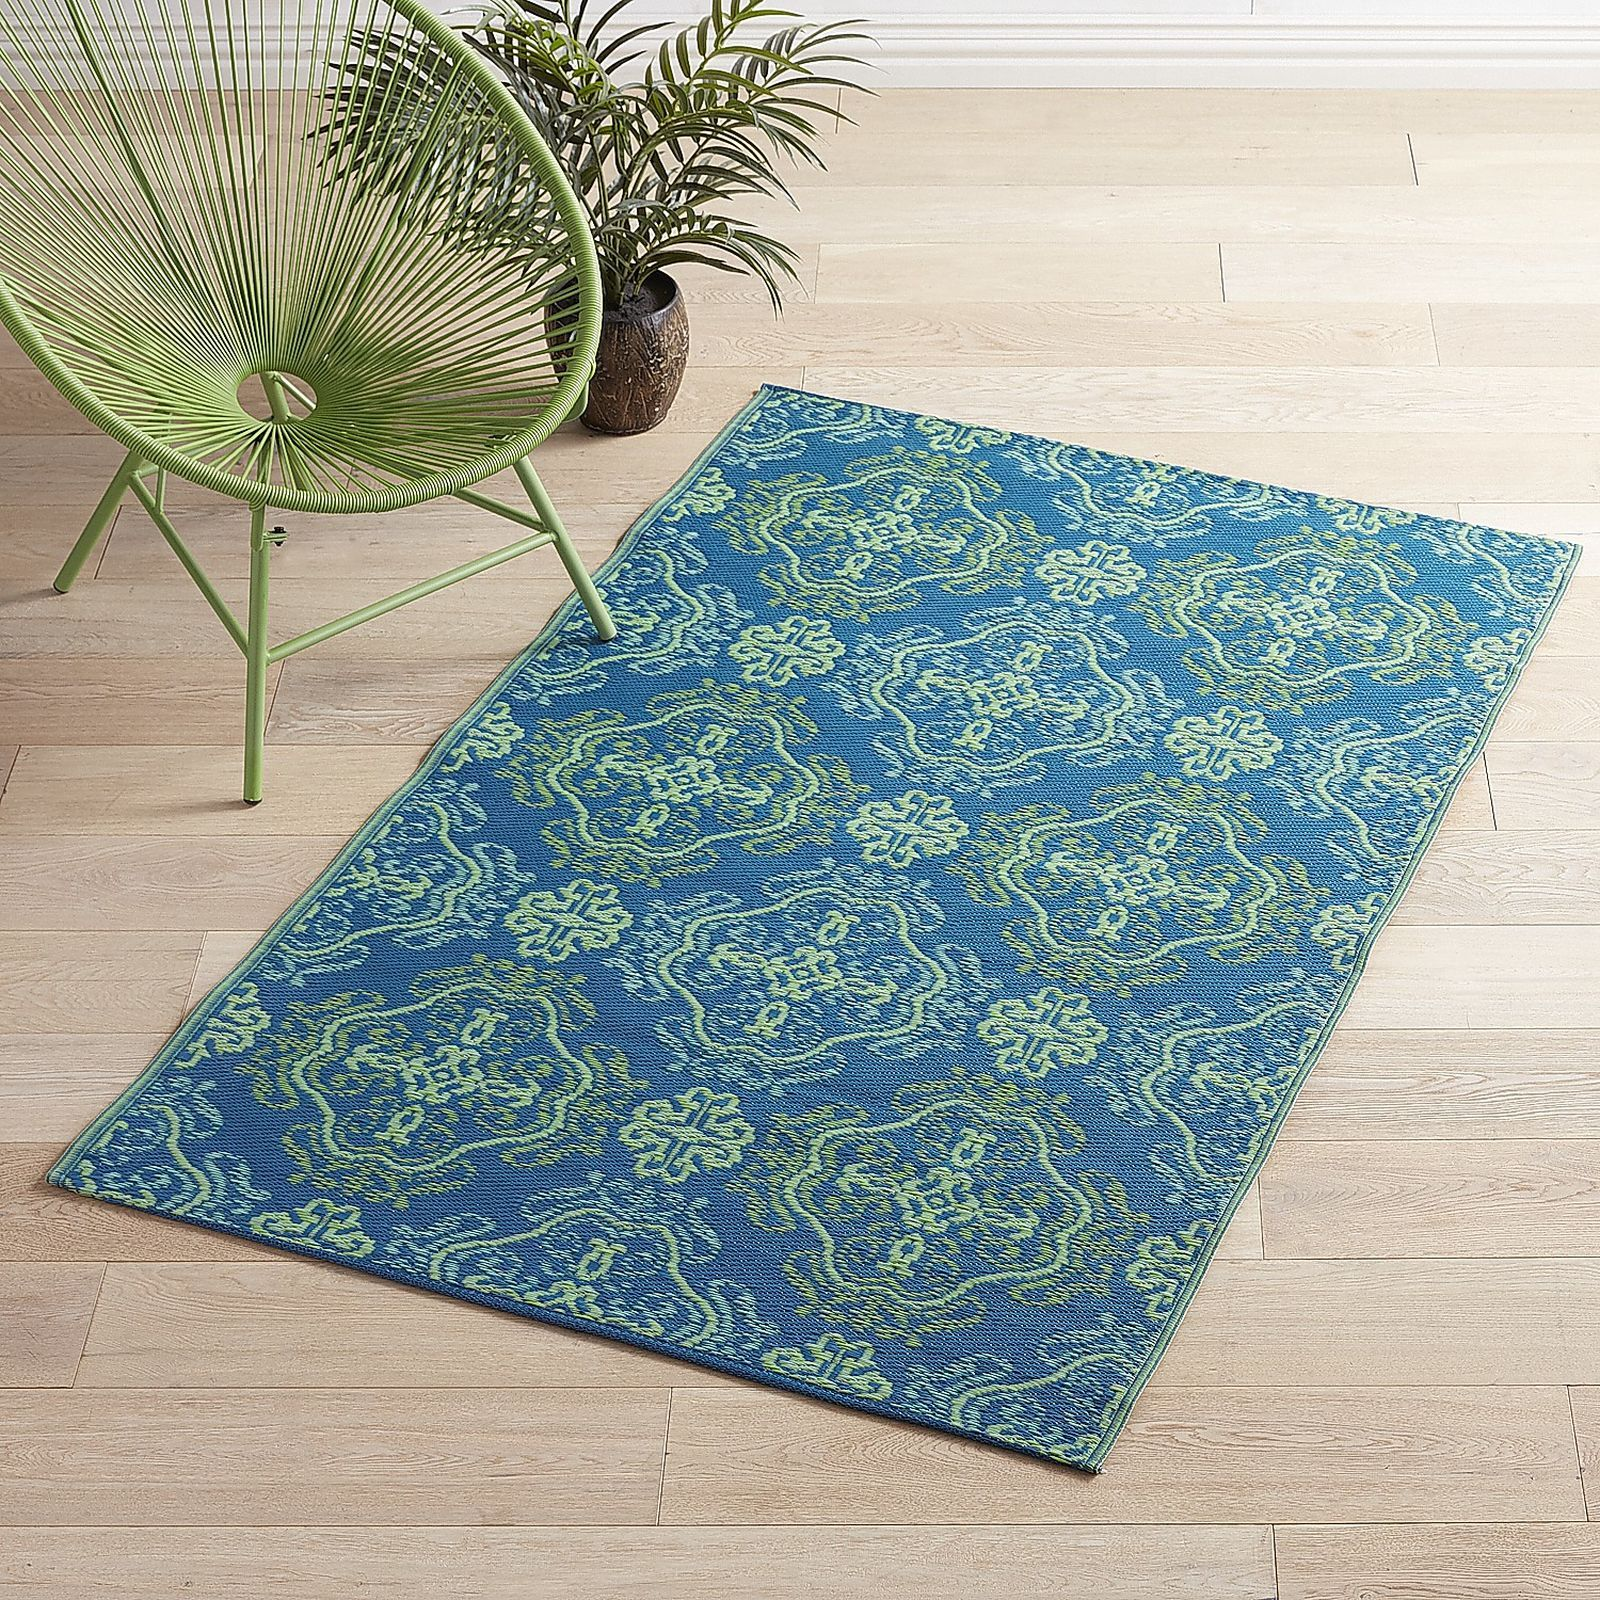 Waterproof Outdoor Boho Medallion 4x6 Rug & Waterproof Outdoor Boho Medallion 4x6 Rug | Design Styles - Bohemian ...